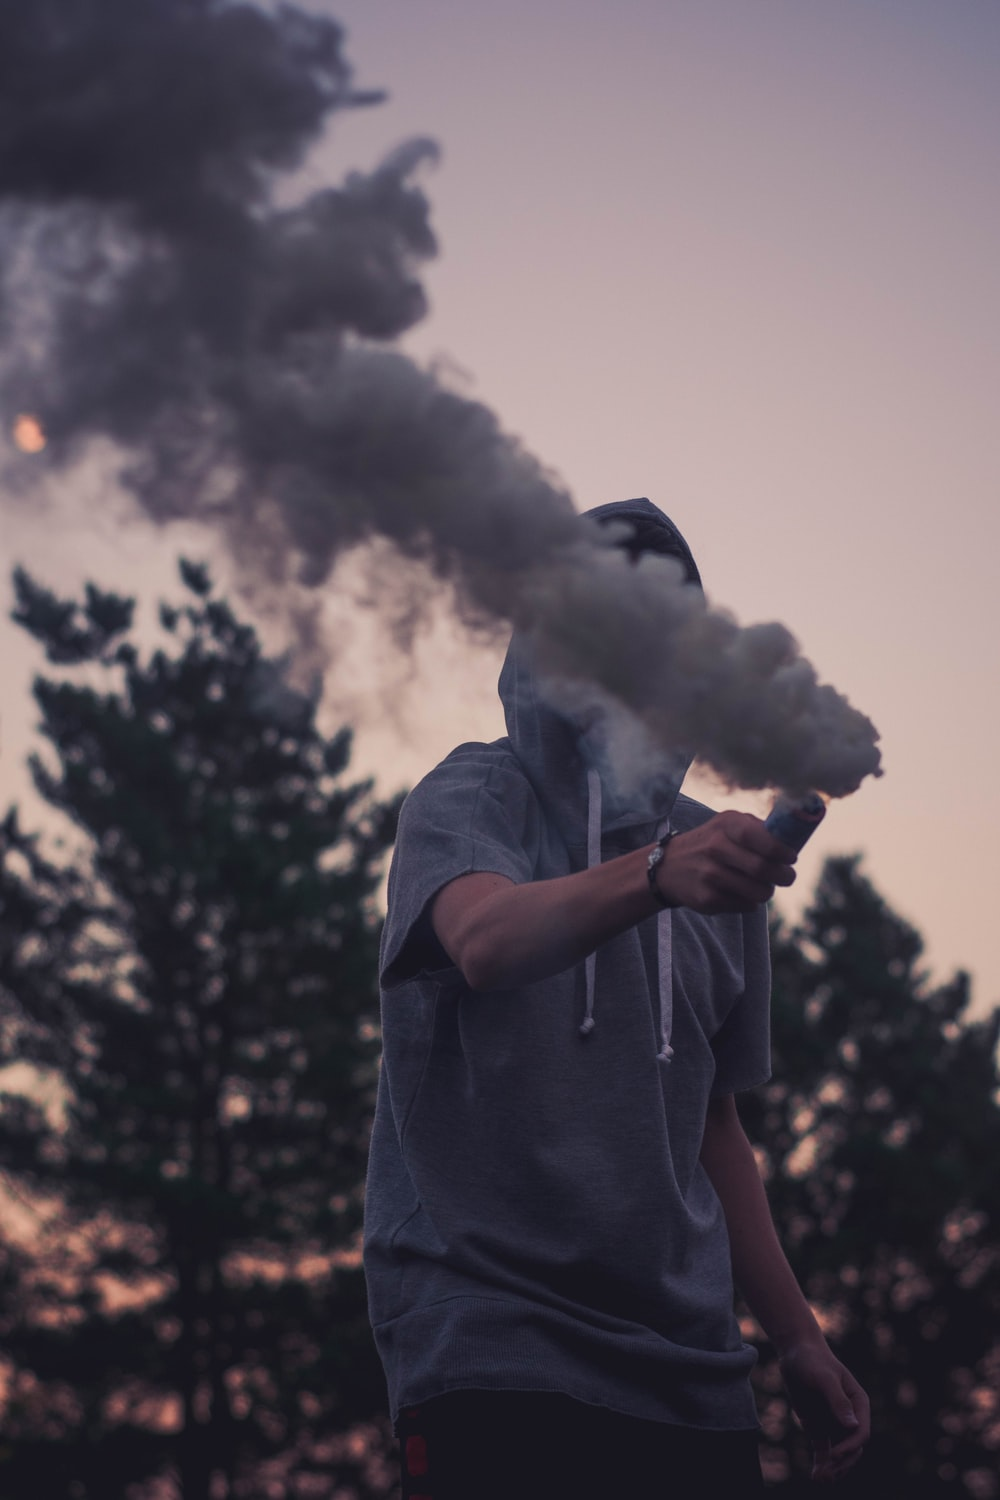 Person Holding Smoke Bomb Pictures Download Free Images On